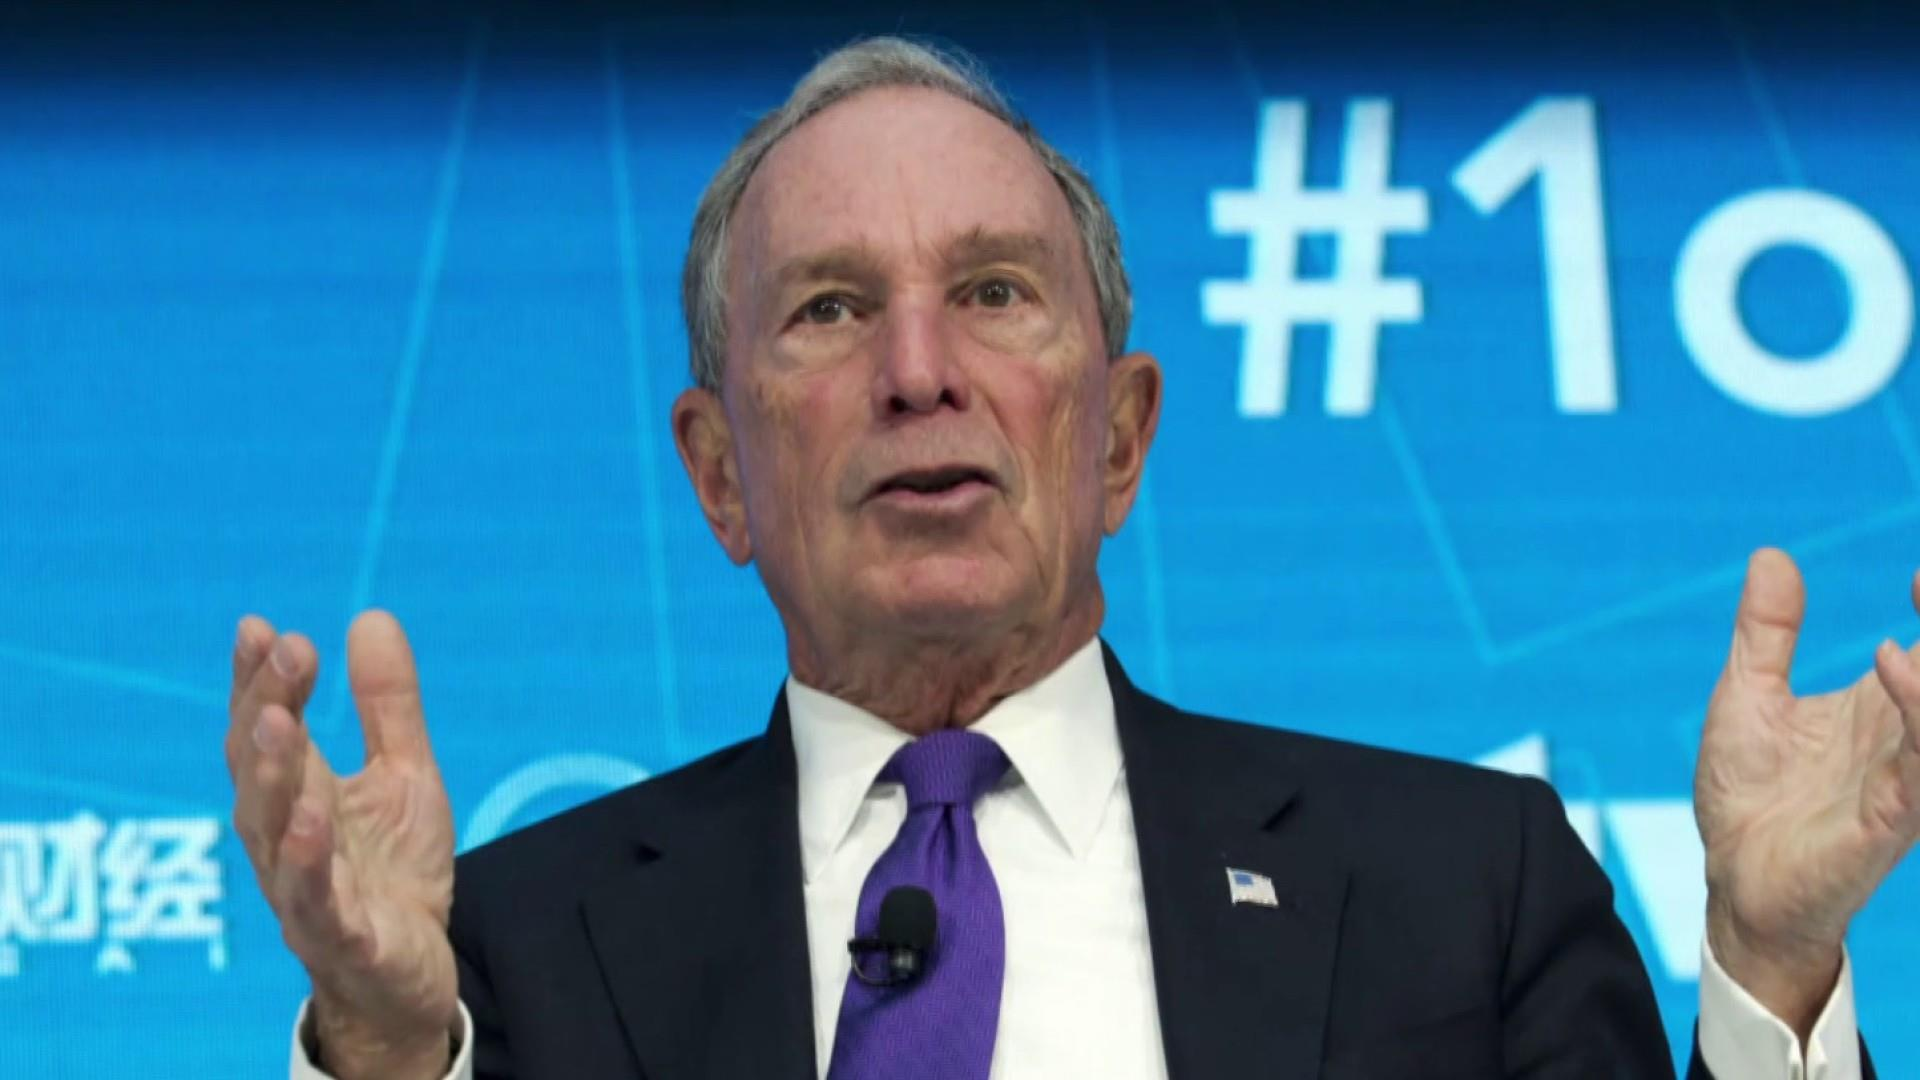 Bloomberg takes first steps into the 2020 race